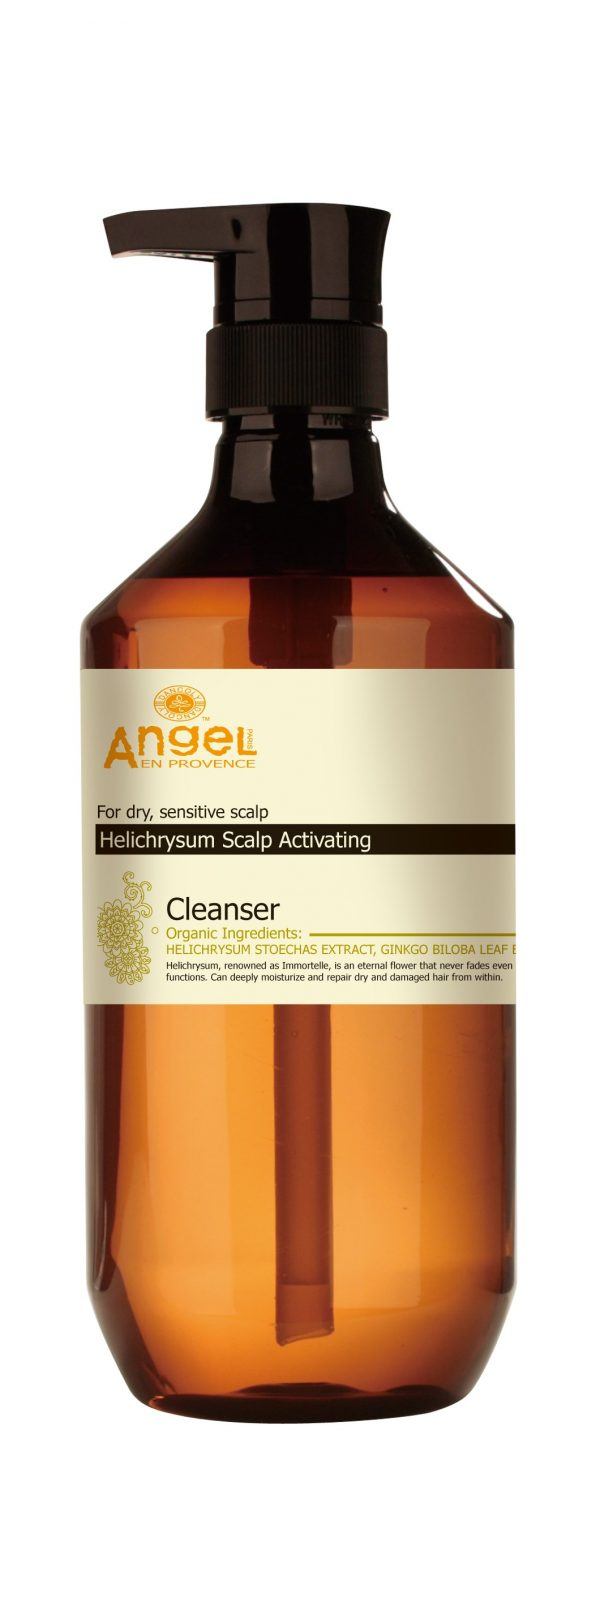 Angel Helichrysum Scalp Activating Cleanser - 800ml - Freshhair